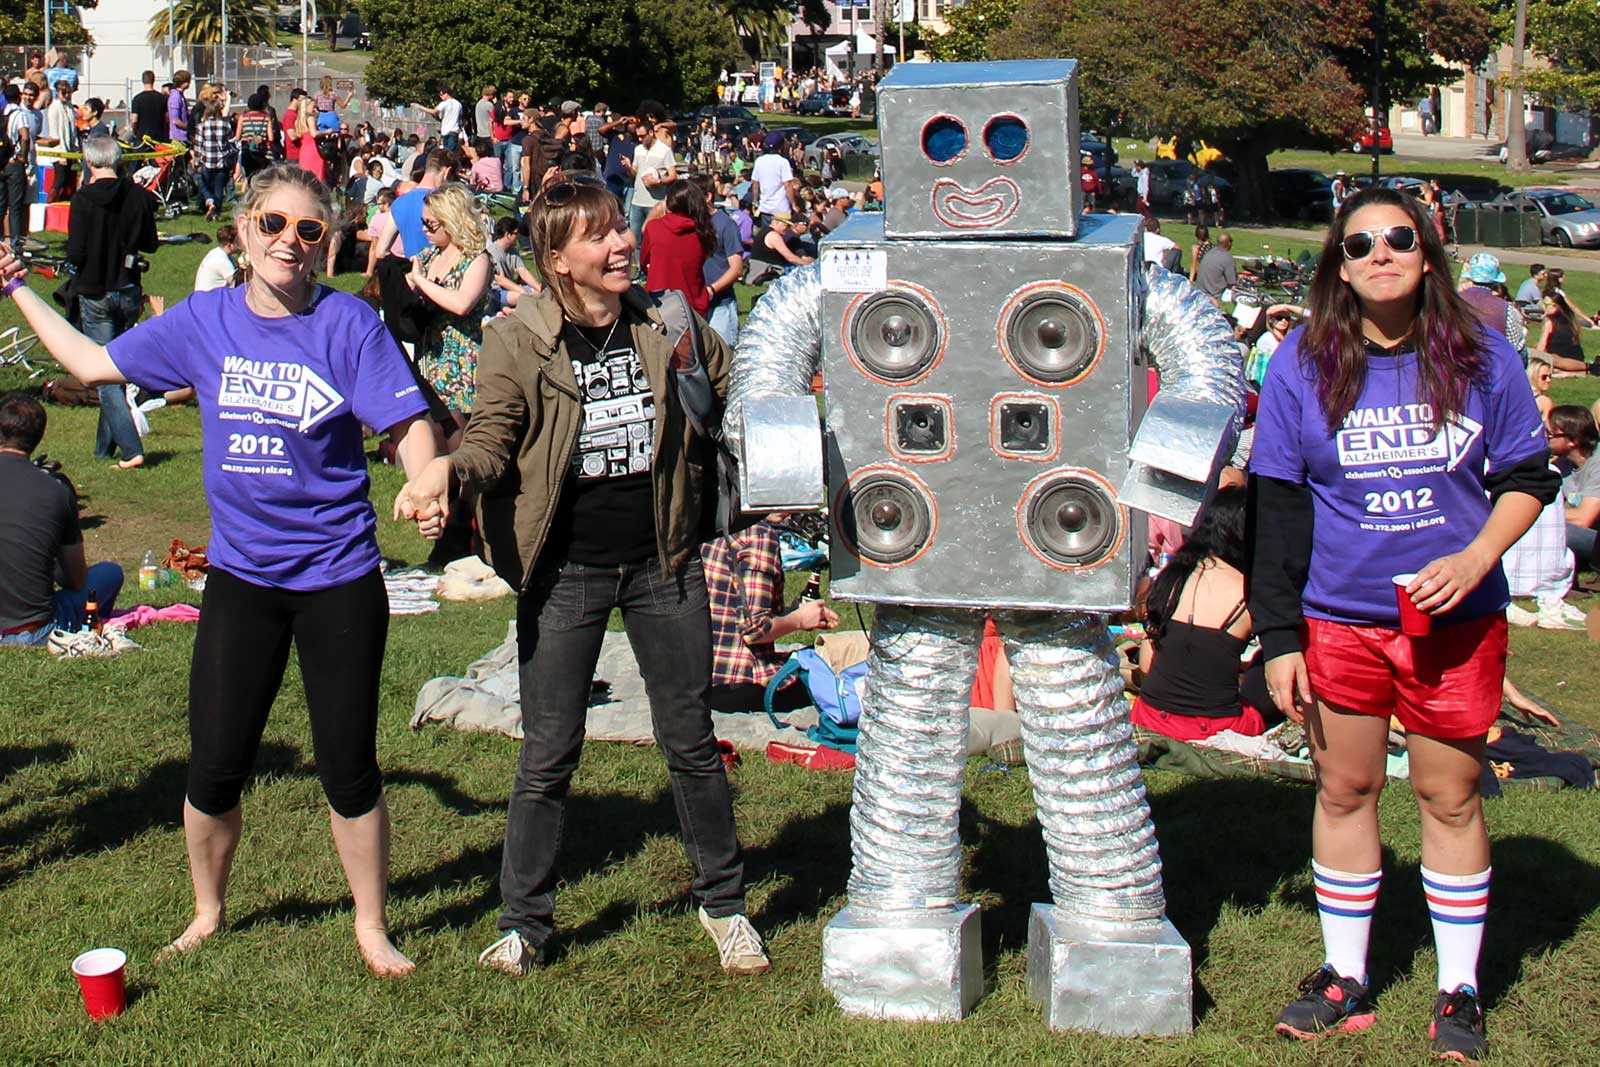 Robot dances in Dolores Park with tech savvy scavenger hunt participants.